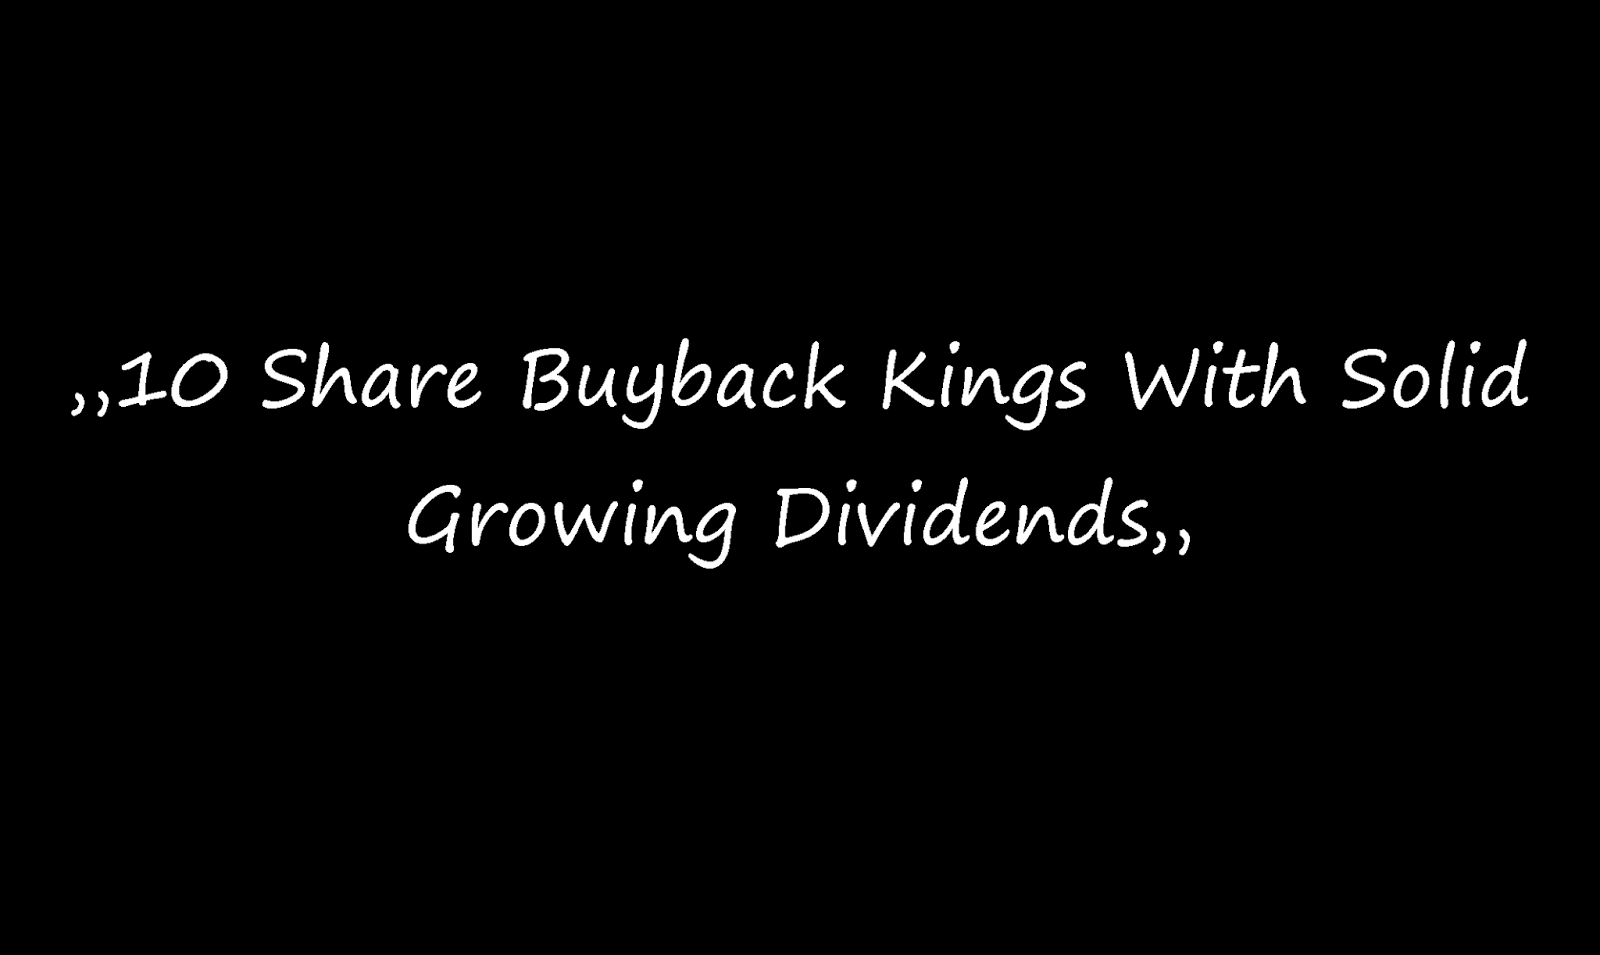 Orcl Stock Quote 10 Share Buyback Kings With Solid Growing Dividends  Smarter Analyst